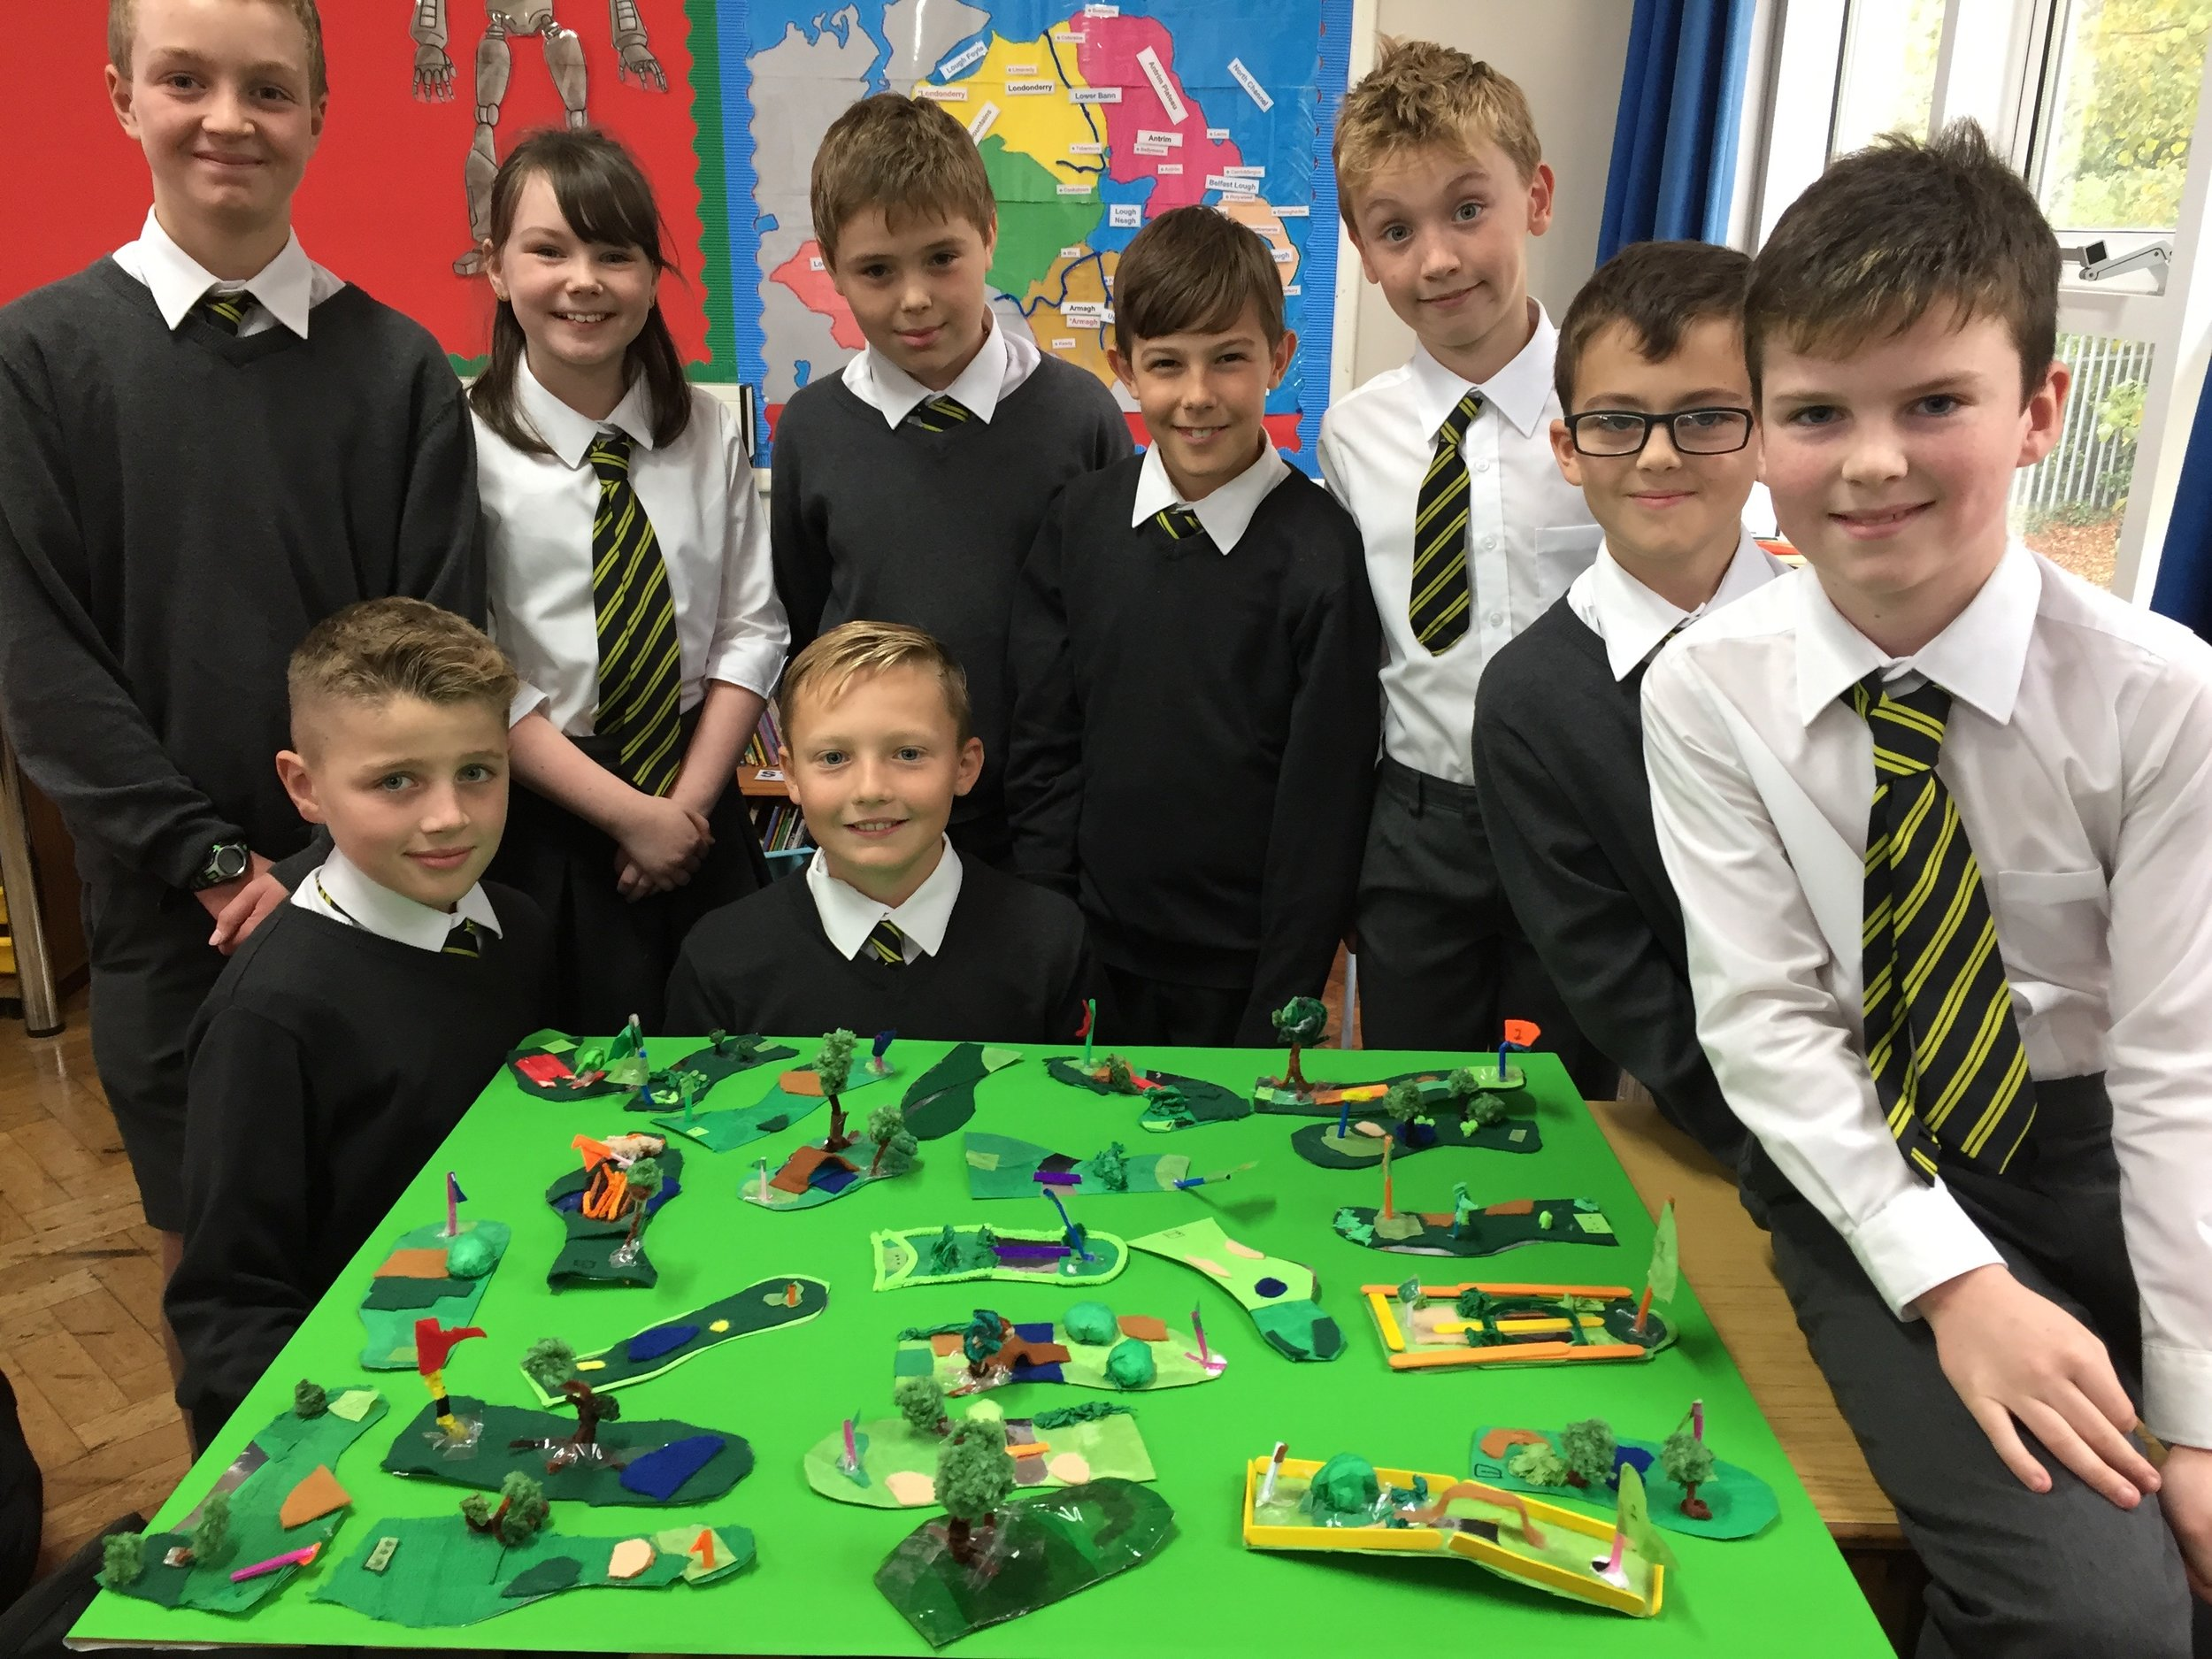 P7 R12 are studying Northern Ireland and have designed their own golf course.  Rory, Darren and Graham have already booked their tee-off times!